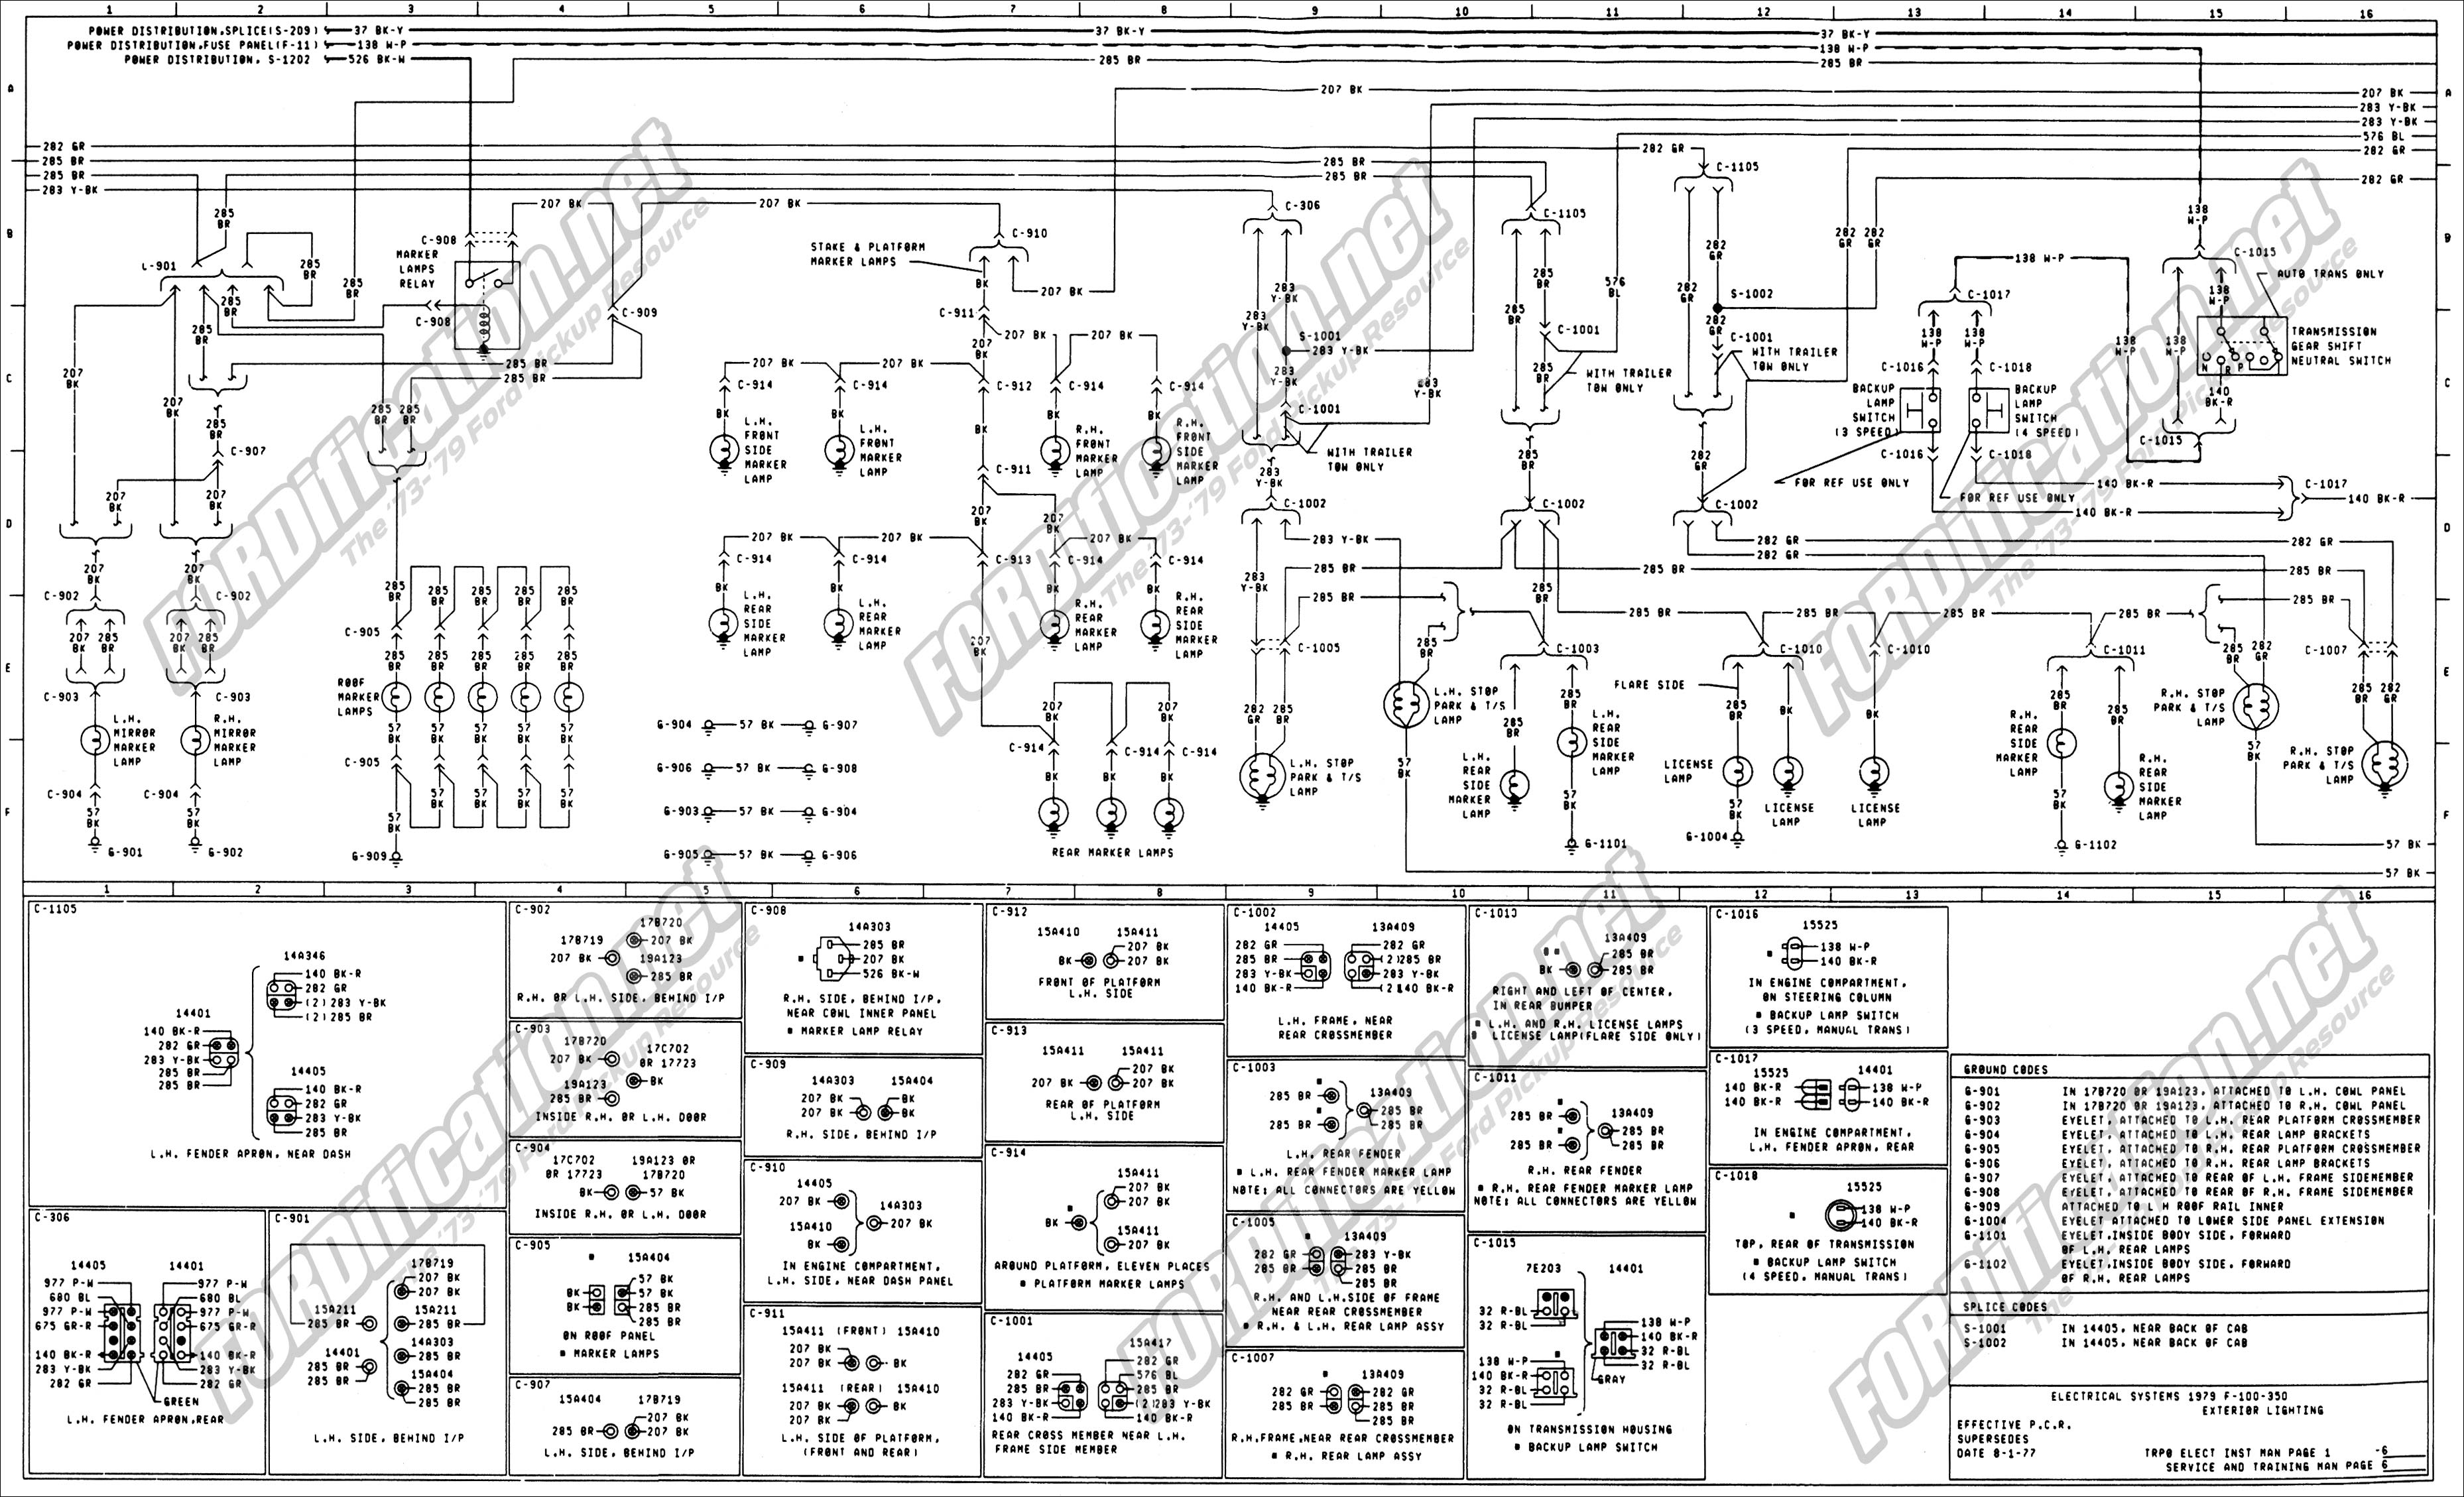 wiring_79master_6of9 1973 1979 ford truck wiring diagrams & schematics fordification net 1999 ford f150 turn signal wiring diagram at readyjetset.co